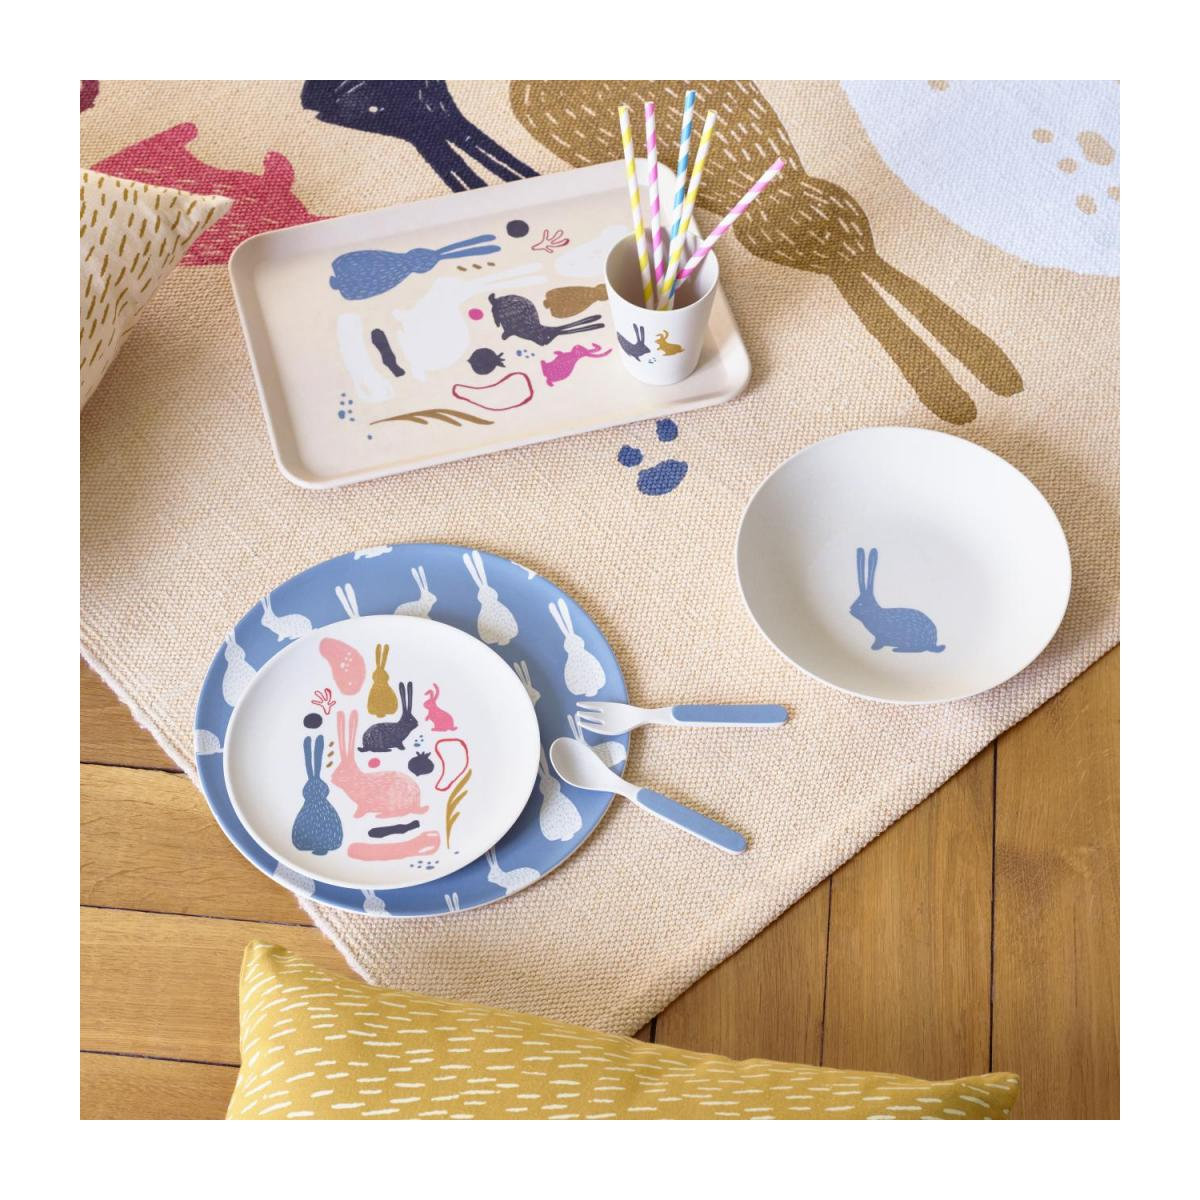 Fork and spoon for children n°3